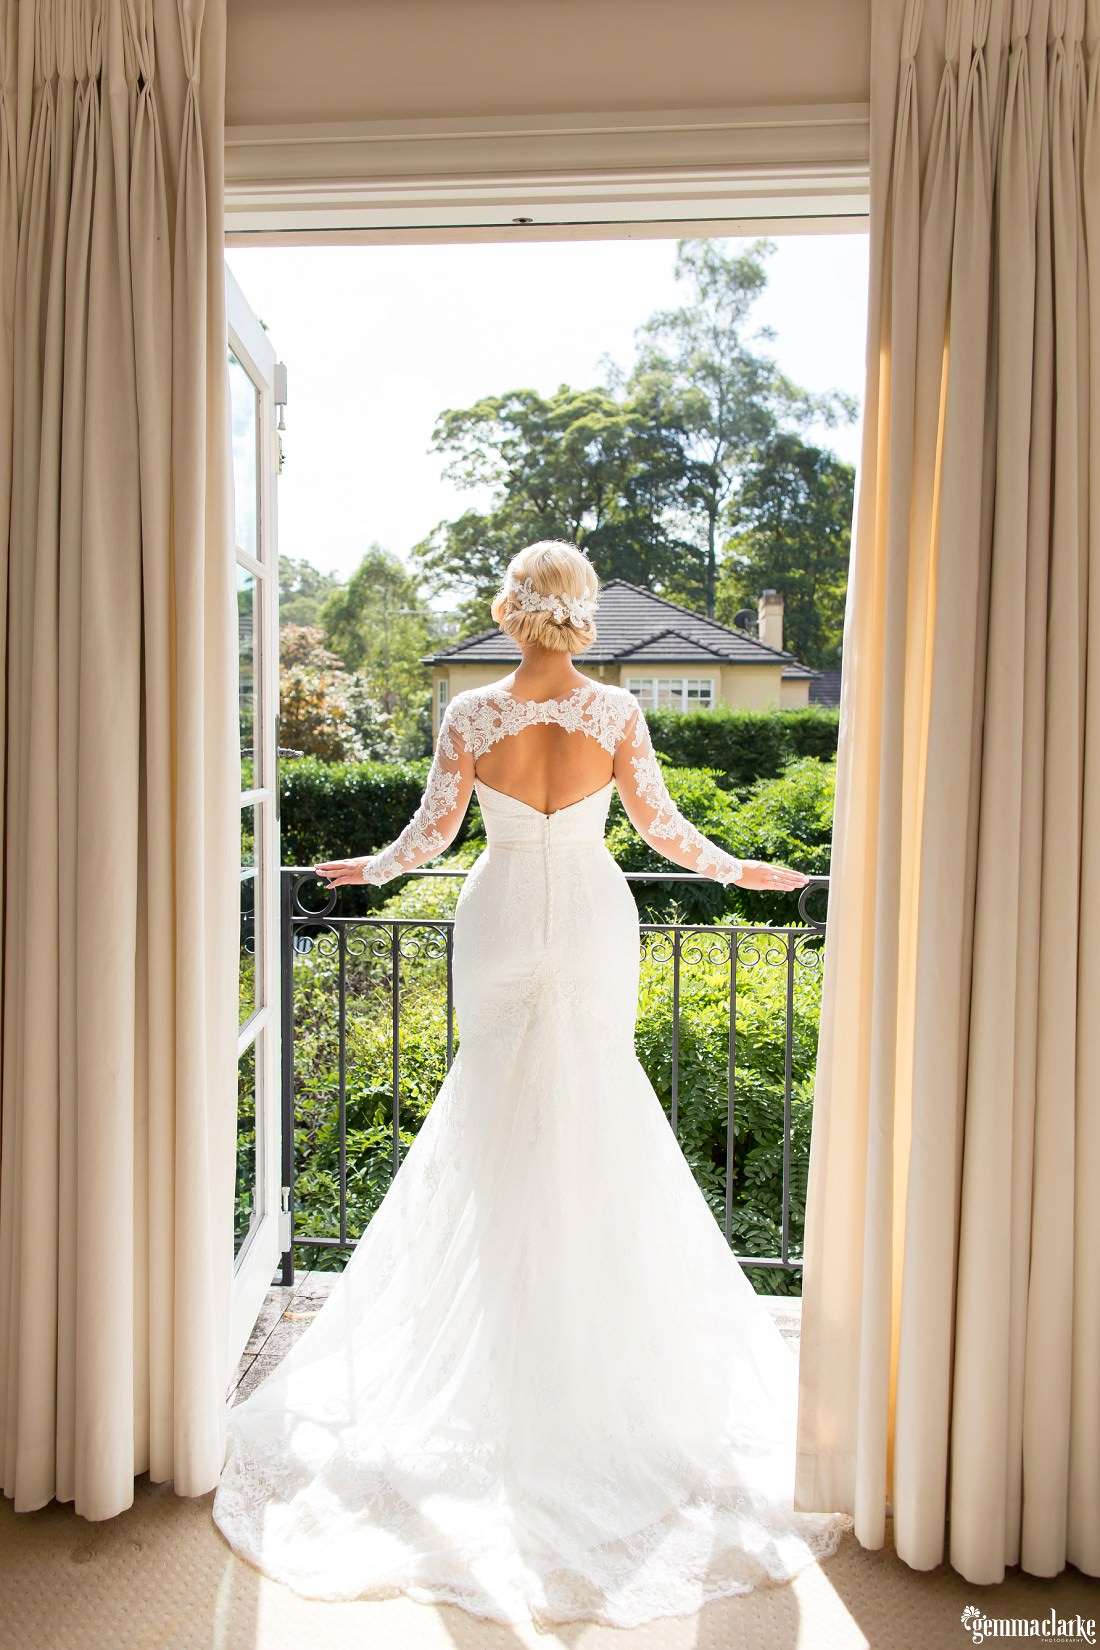 A bride in a lovely lacy wedding dress looking out from a balcony